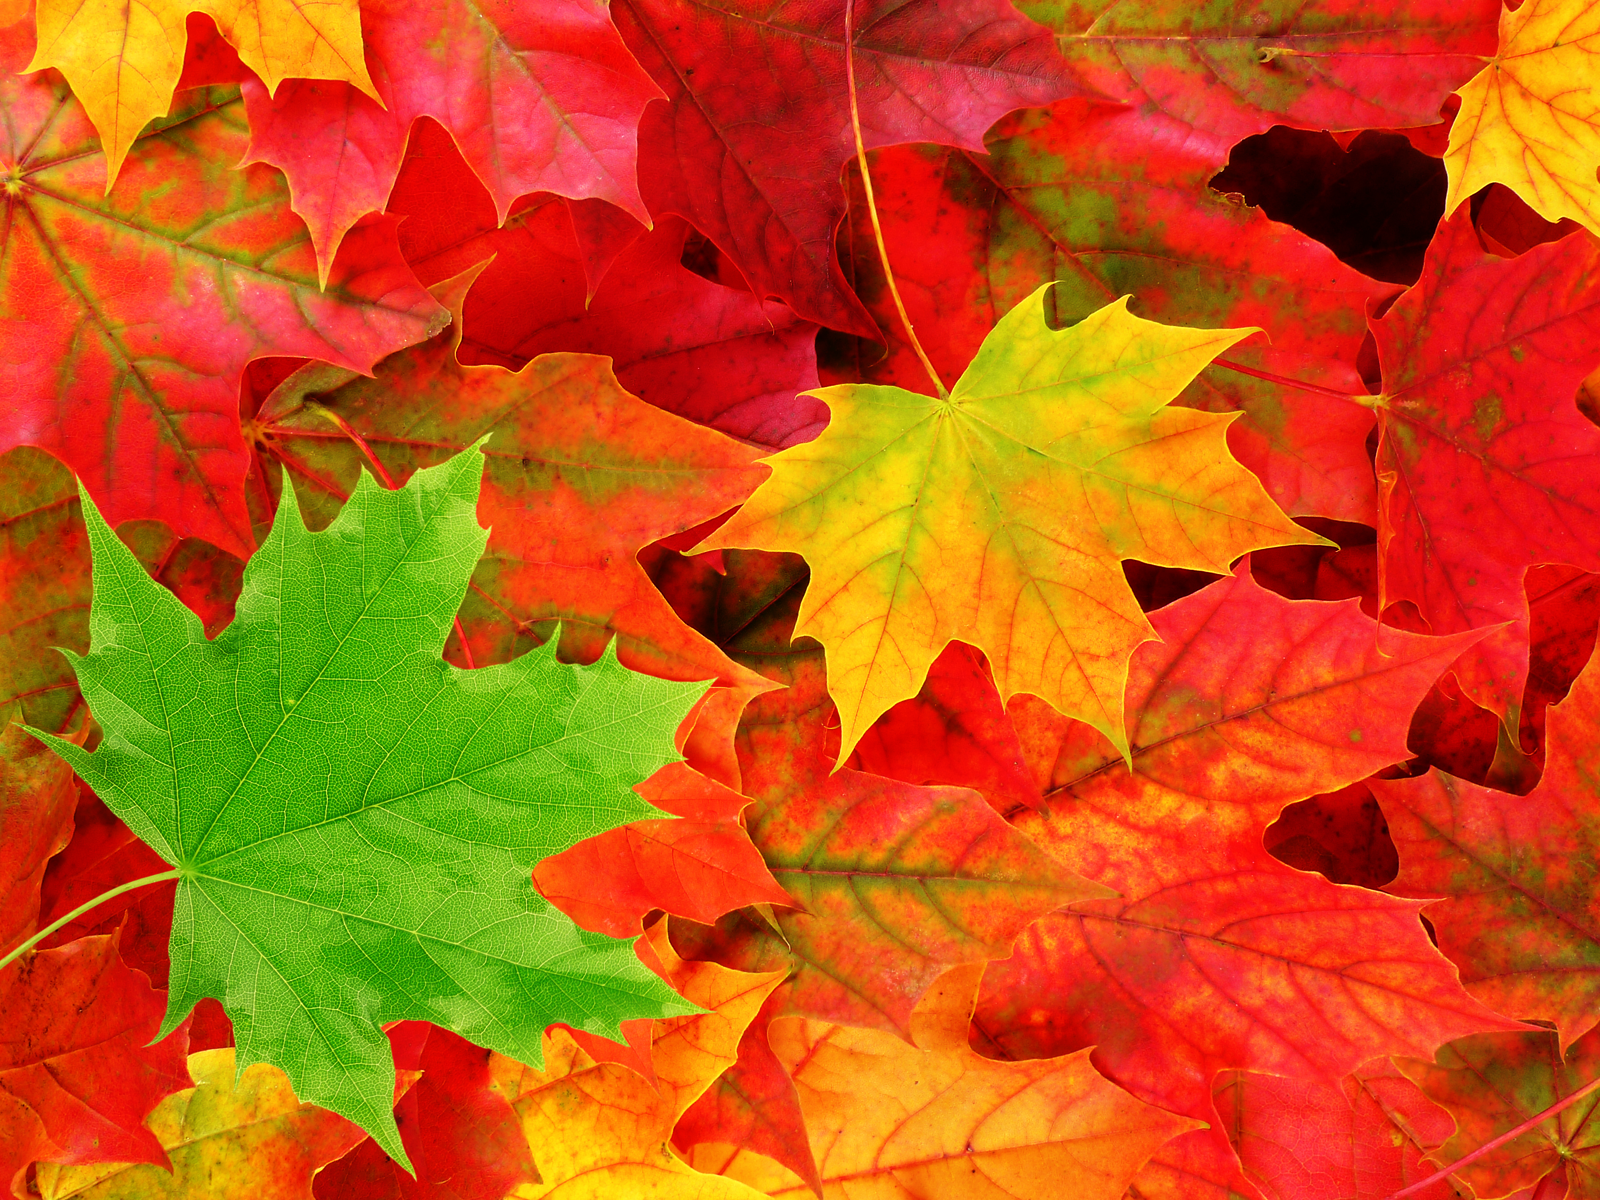 HD Autumn Leaves Wallpaper For Background, Alleen Lindamood 67